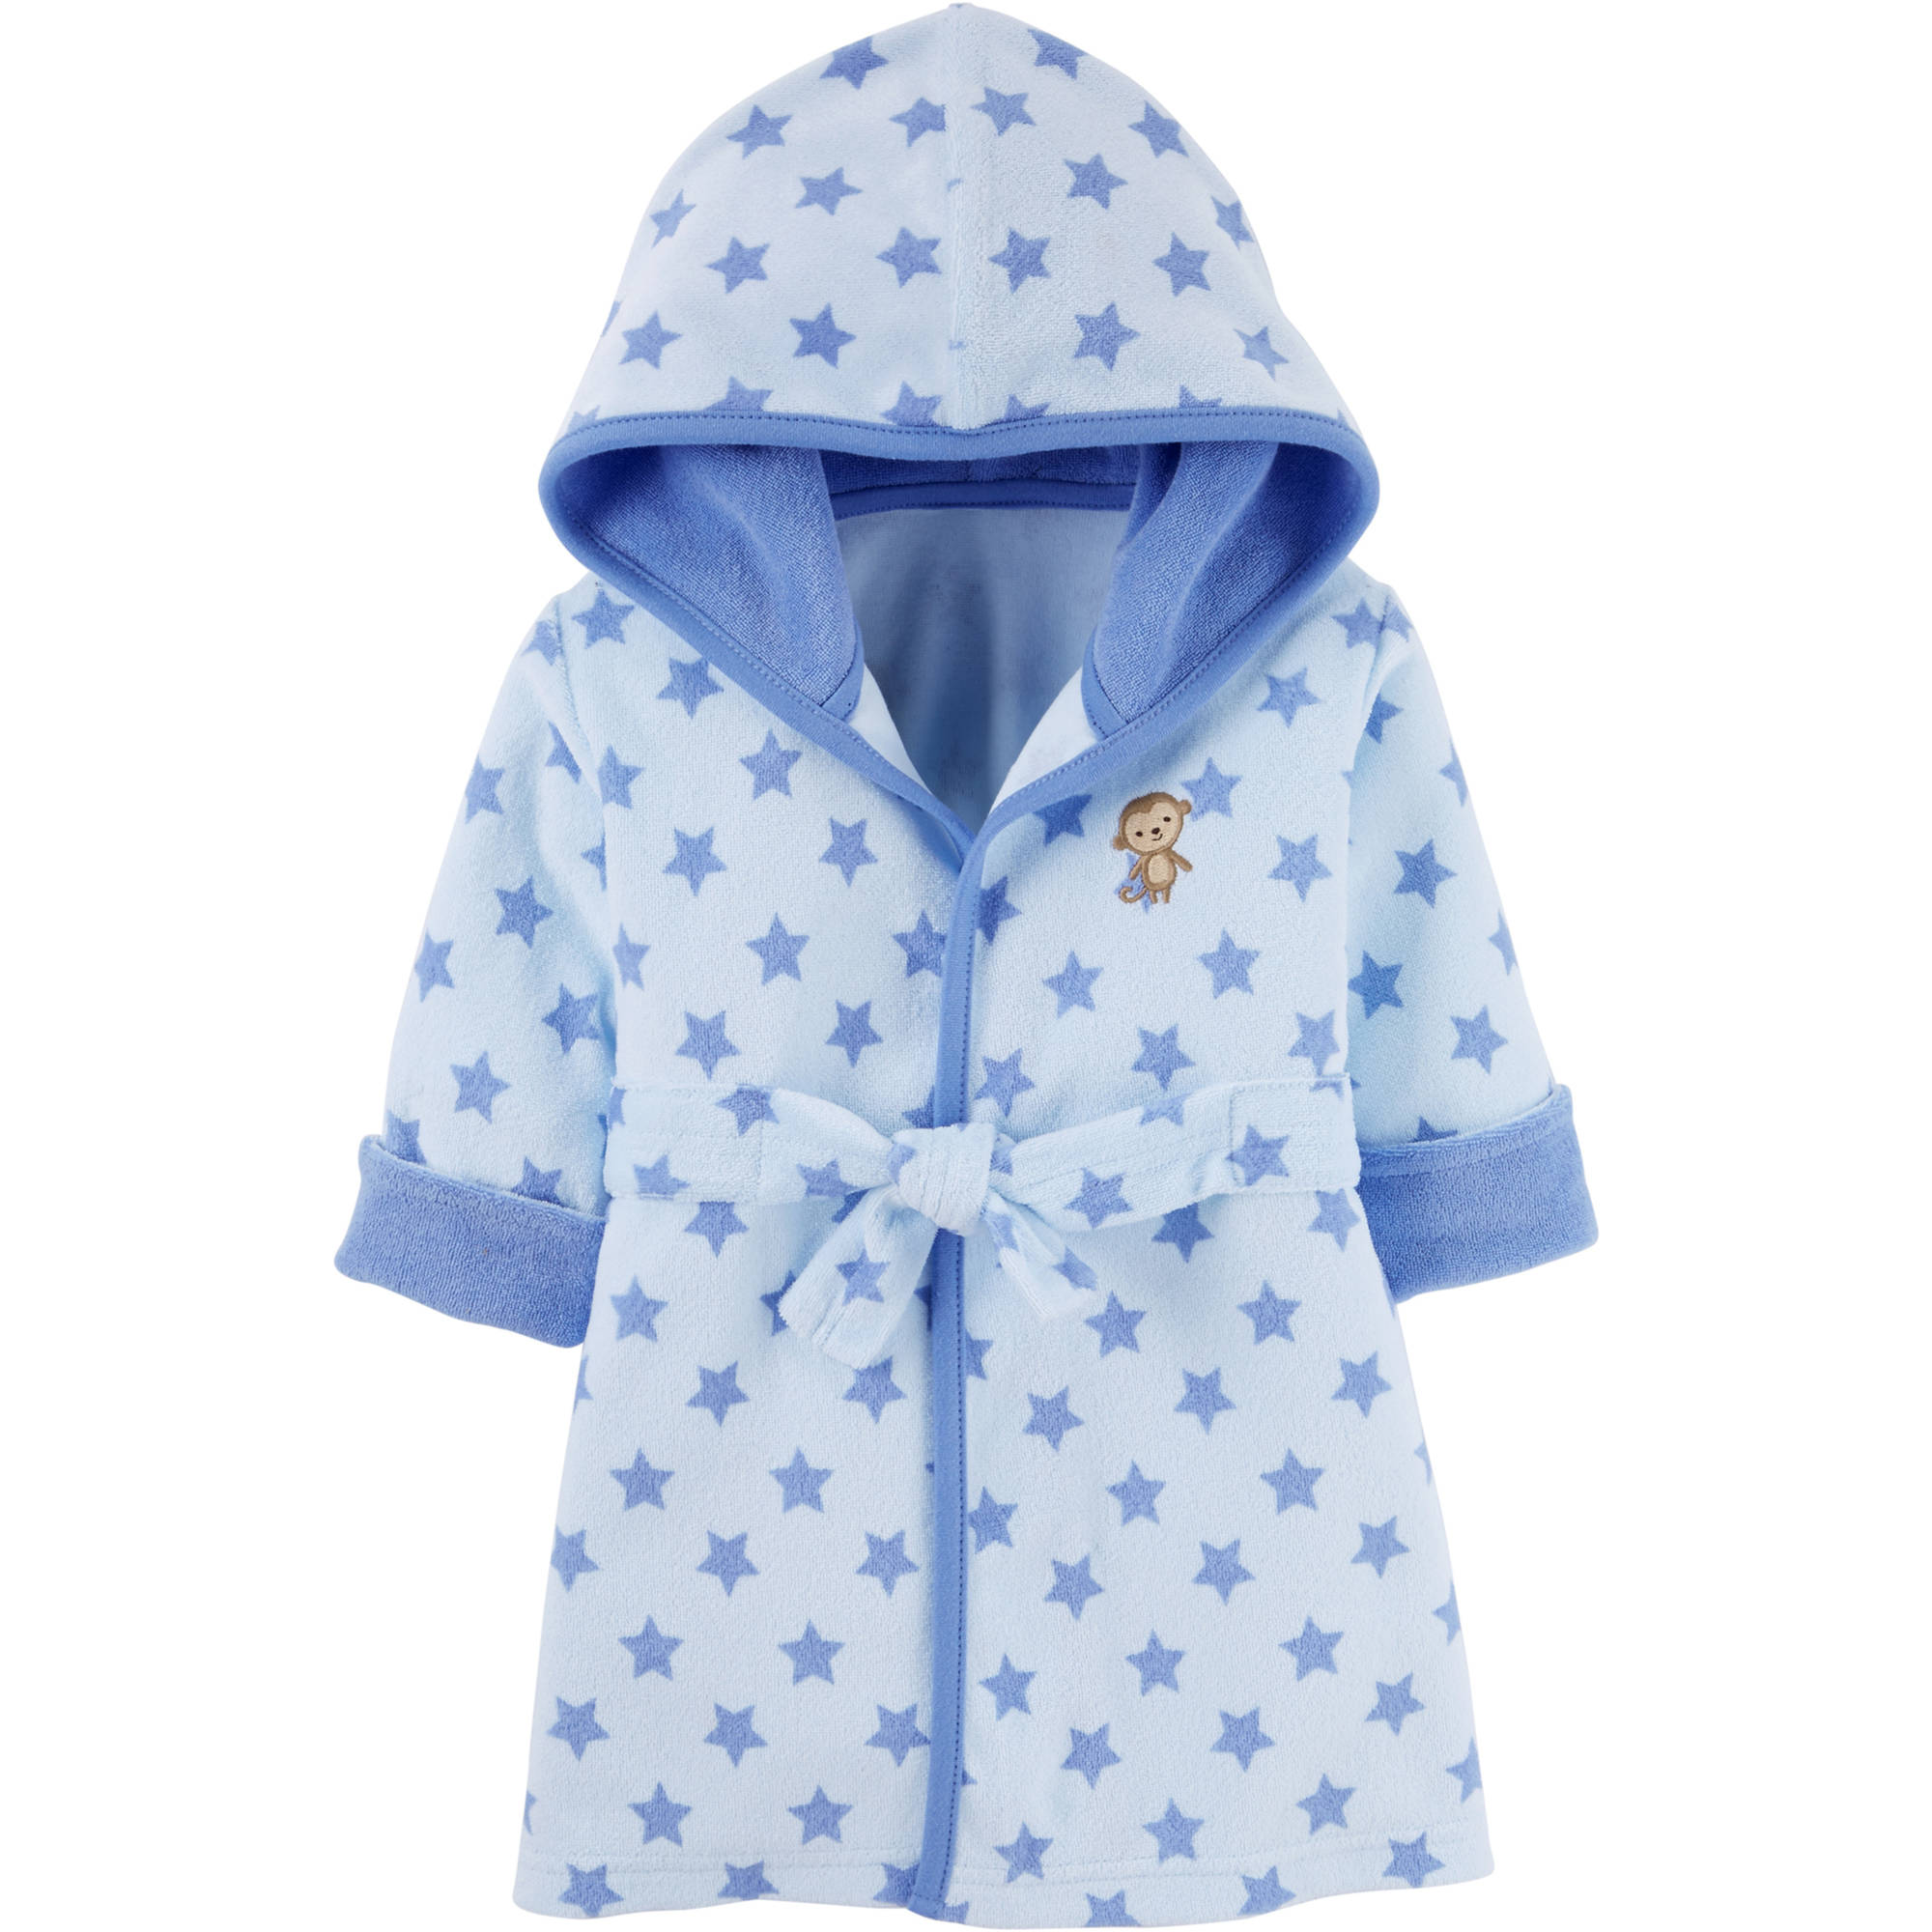 Child Of Mine by Carter's Newborn Baby Boy Robe